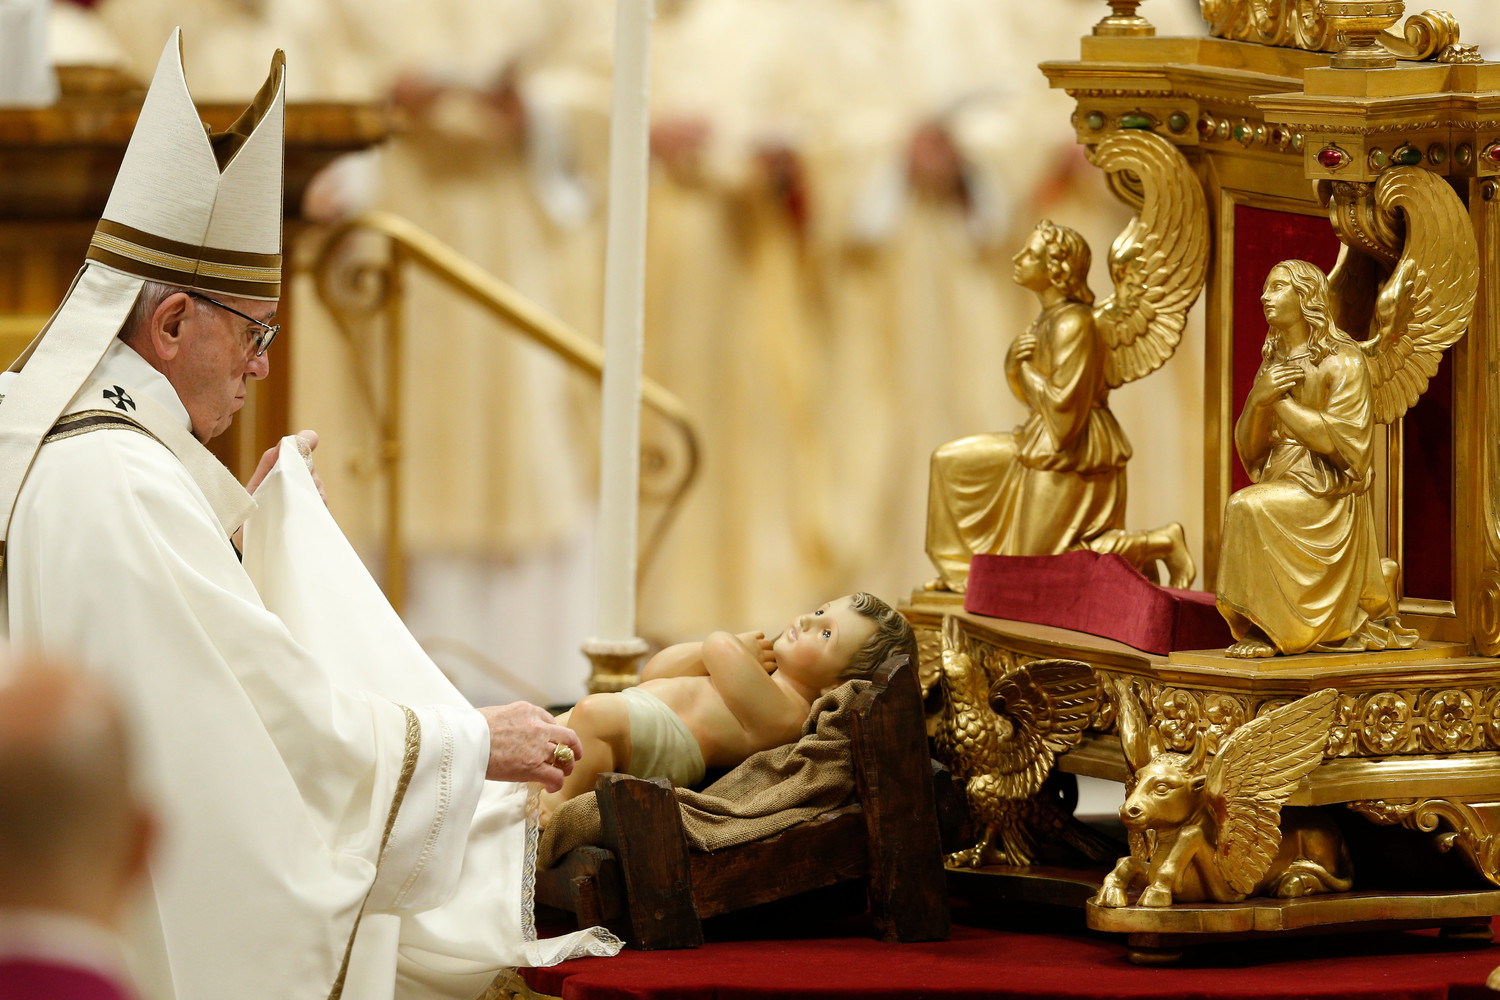 Pope Francis unveils a figurine of the baby Jesus at the start of Christmas Eve Mass in St. Peter's Basilica at the Vatican Dec. 24.